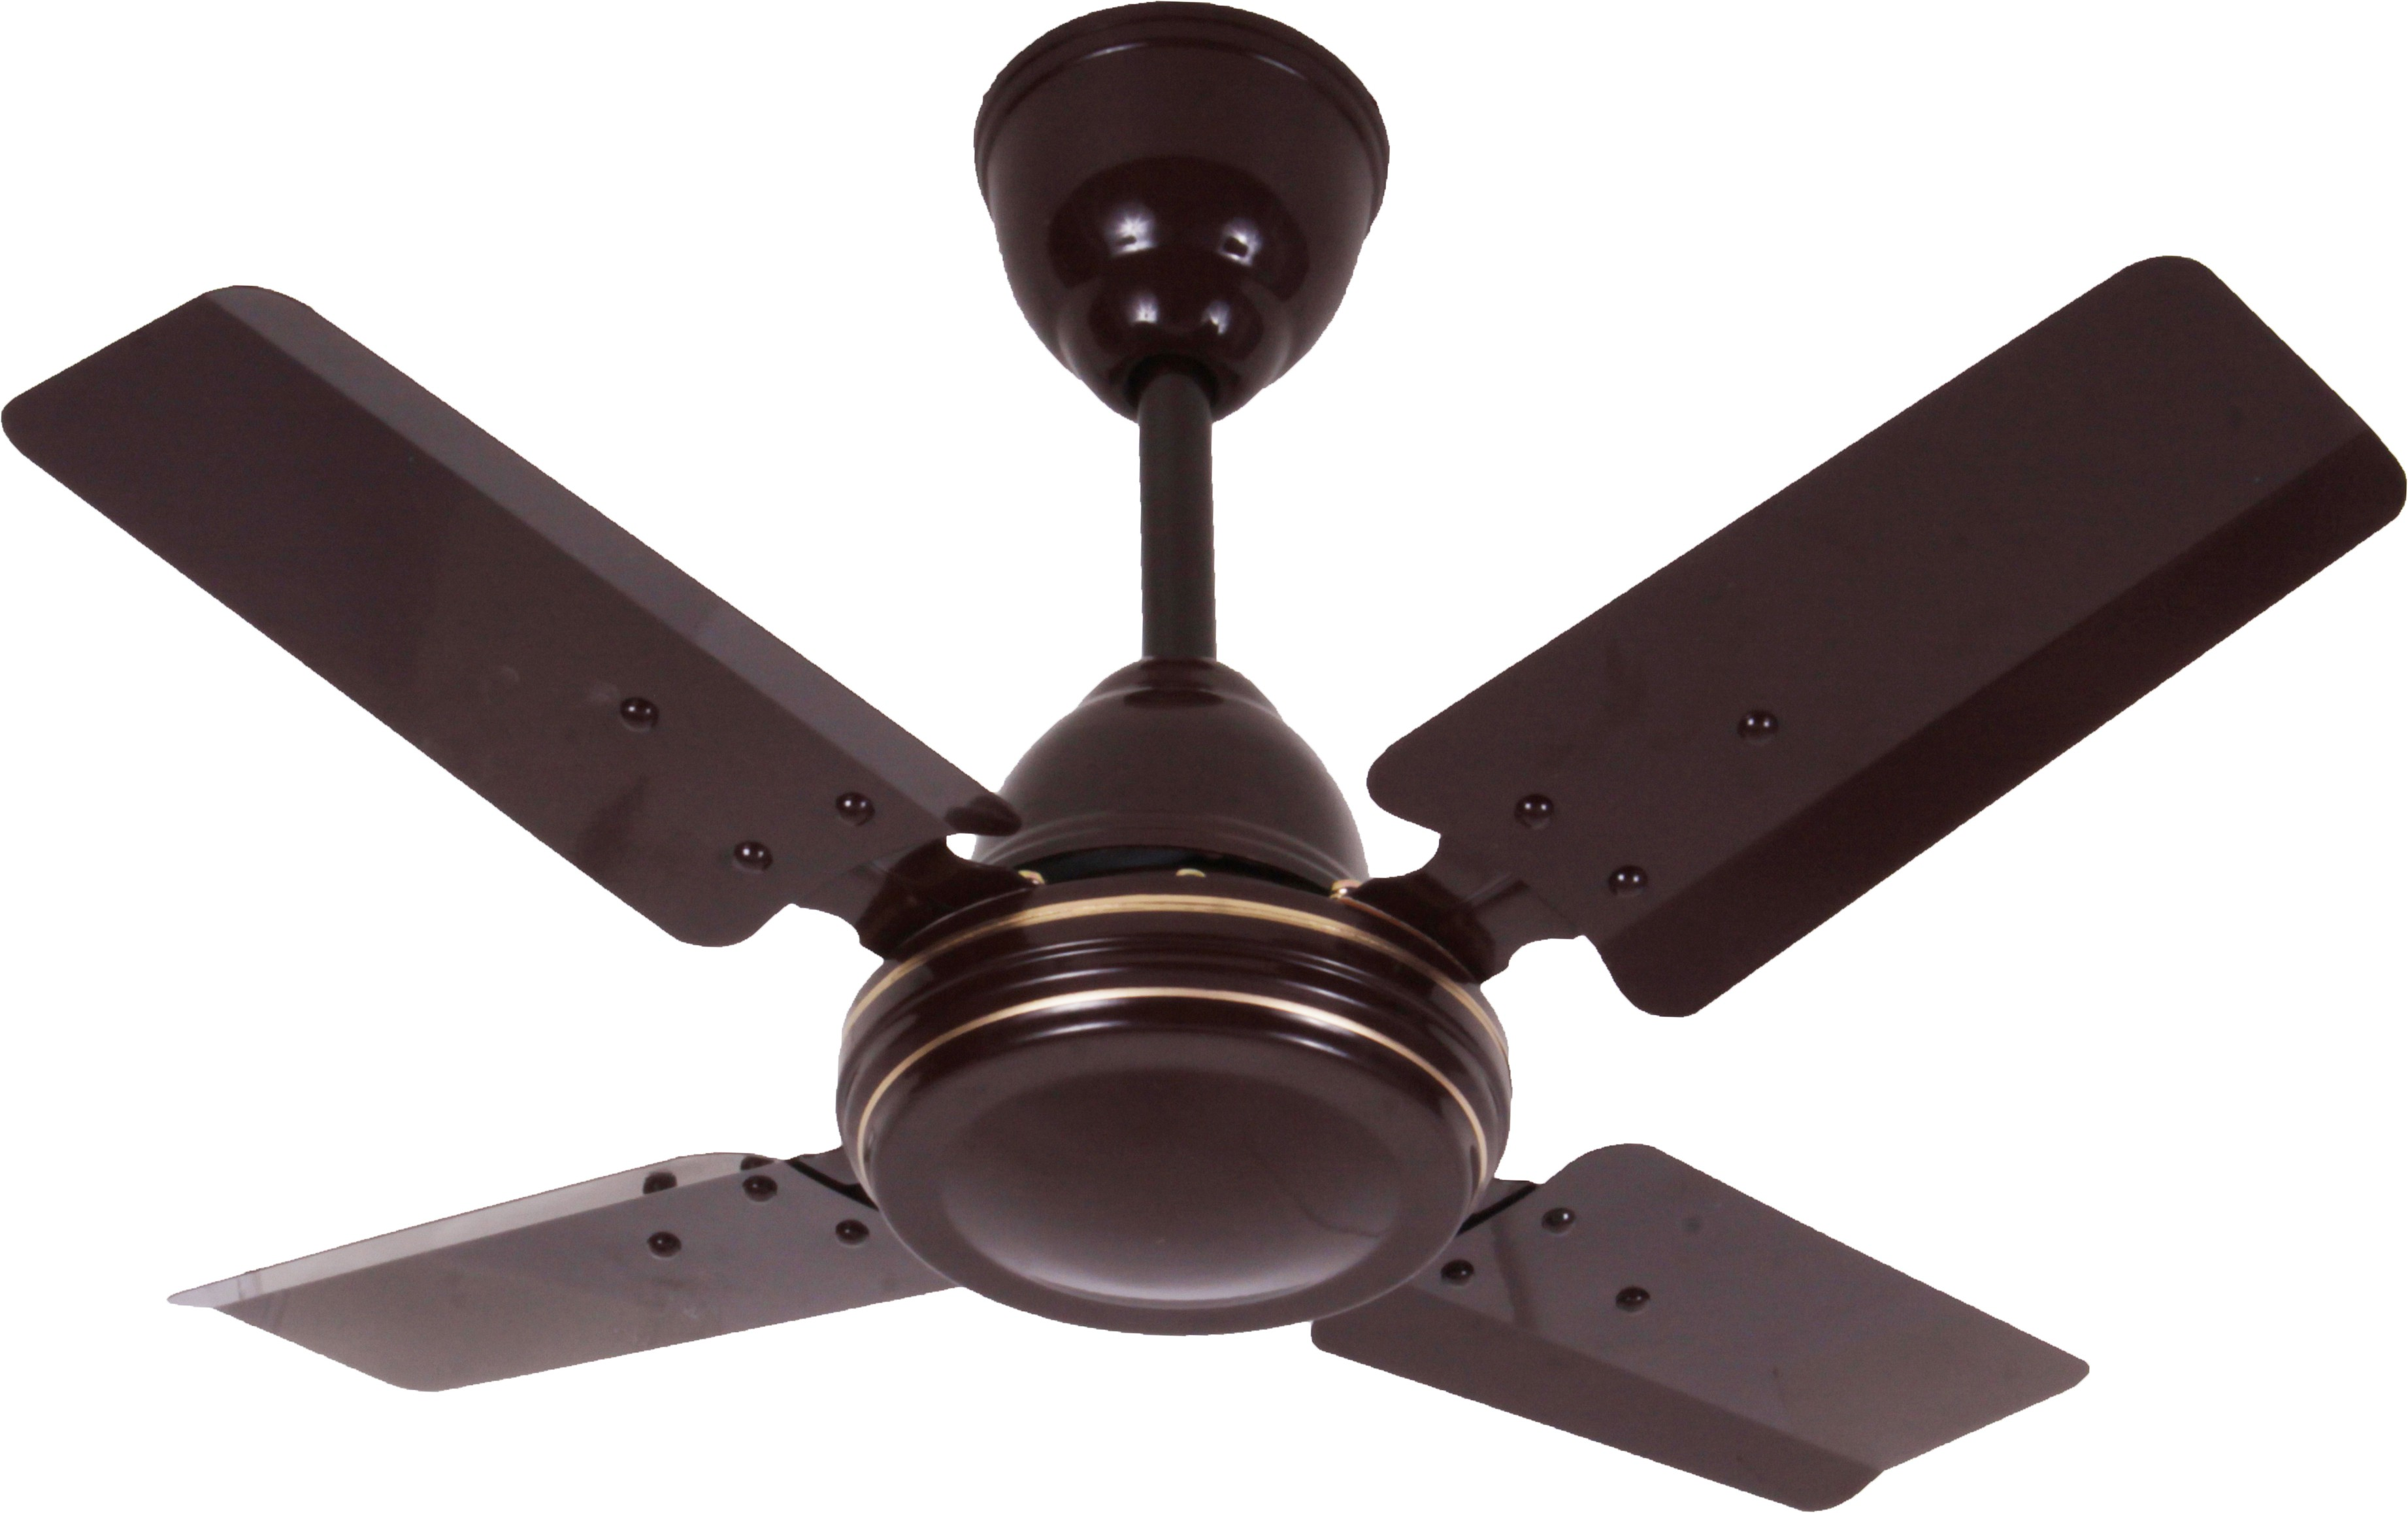 Eurolex bullet 4 blade ceiling fan price in india 16 apr 2018 eurolex bullet 4 blade ceiling fanbrown aloadofball Image collections